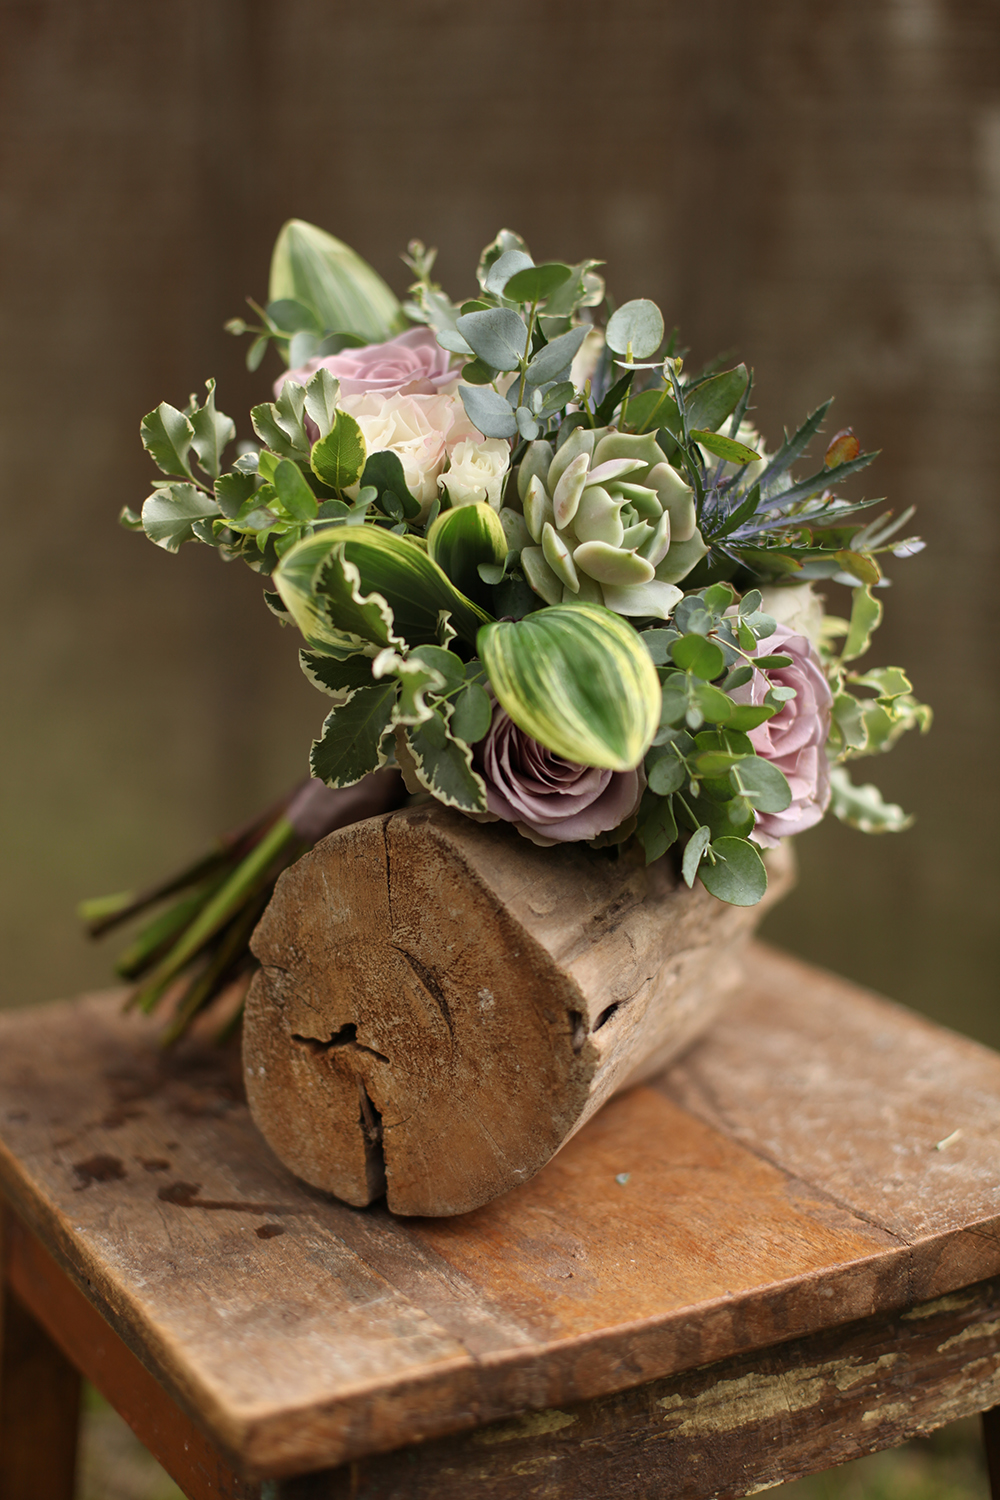 mother of the bride bouquet by wedding florist Floral Verde LLC in Cincinnati, Ohio; with succulents, Amnesia roses, Echeveria 'Lola', thistle, White Majolica spray roses, gunnii eucalyptus, mini variegated pittosporum and variegated Solomon's Seal.